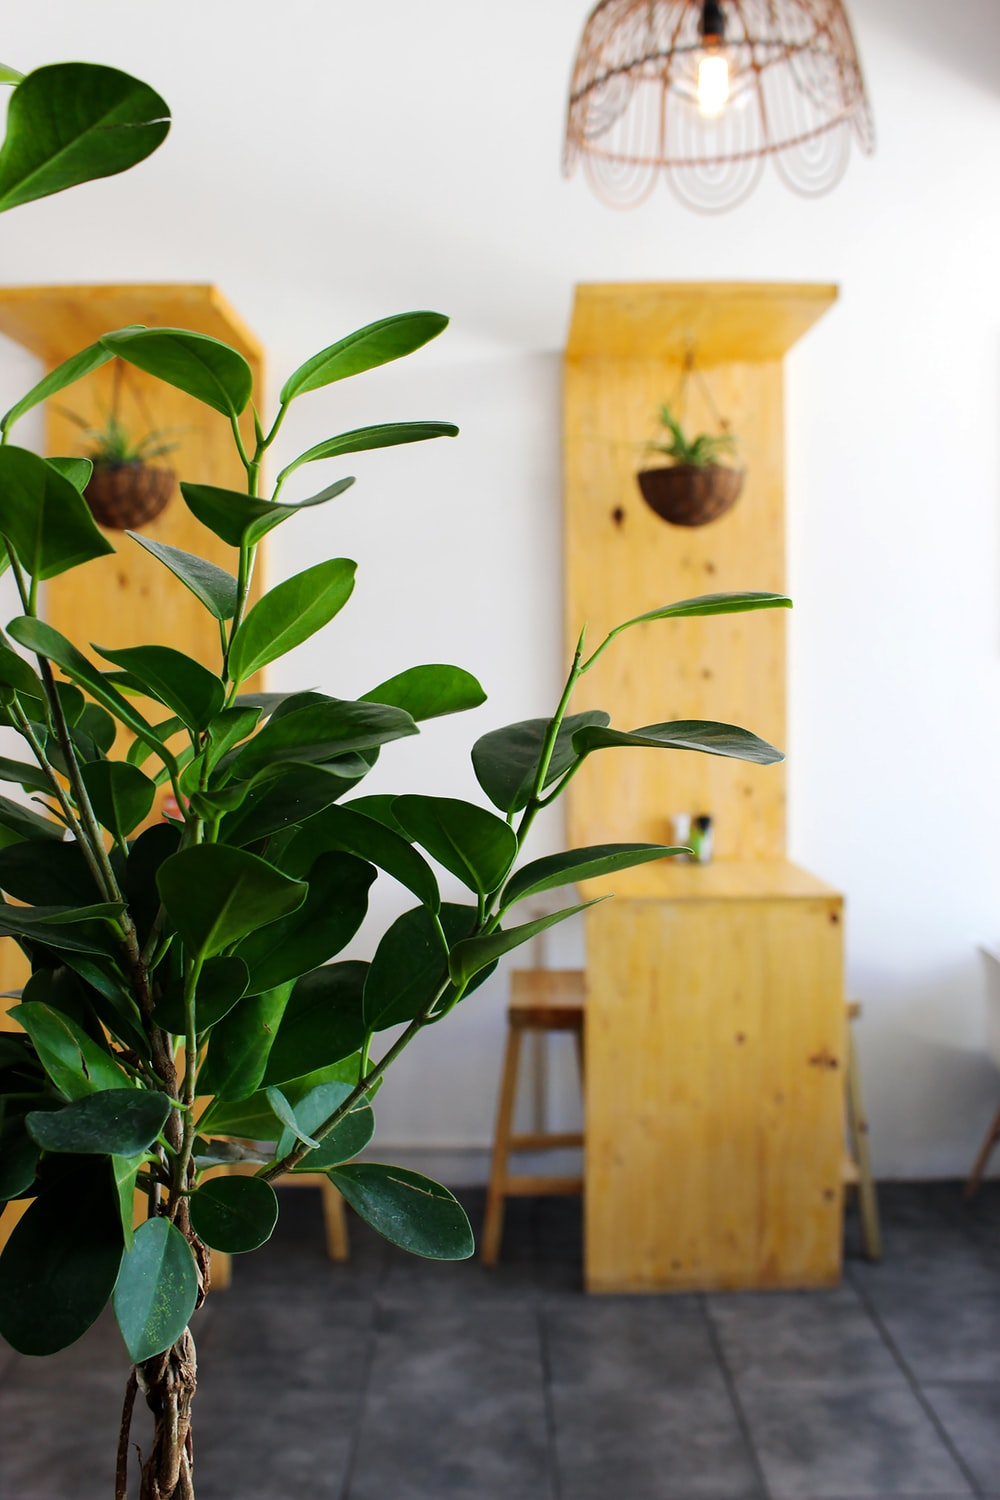 green indoor potted plant near table and chairs